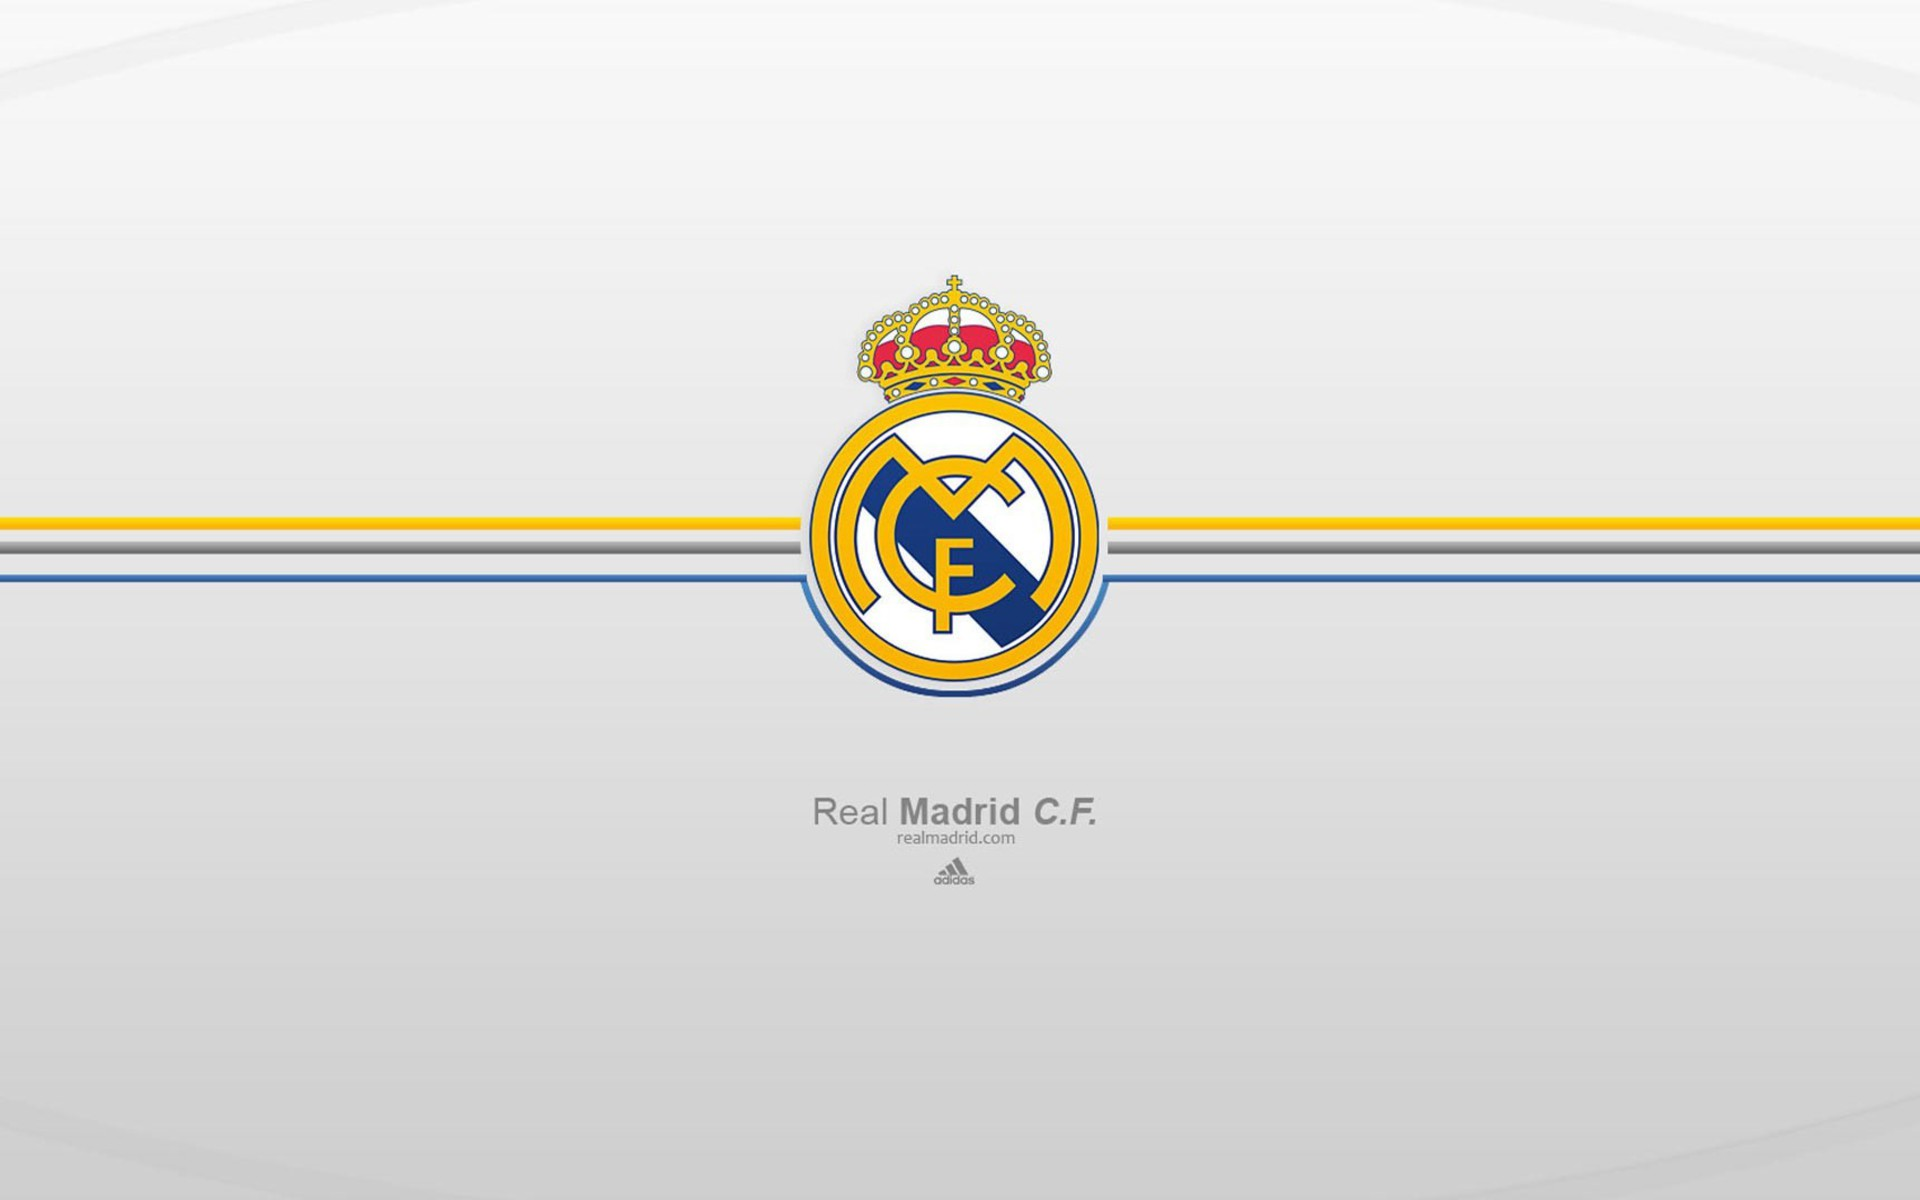 1920x1200 - Real Madrid C.F. Wallpapers 14